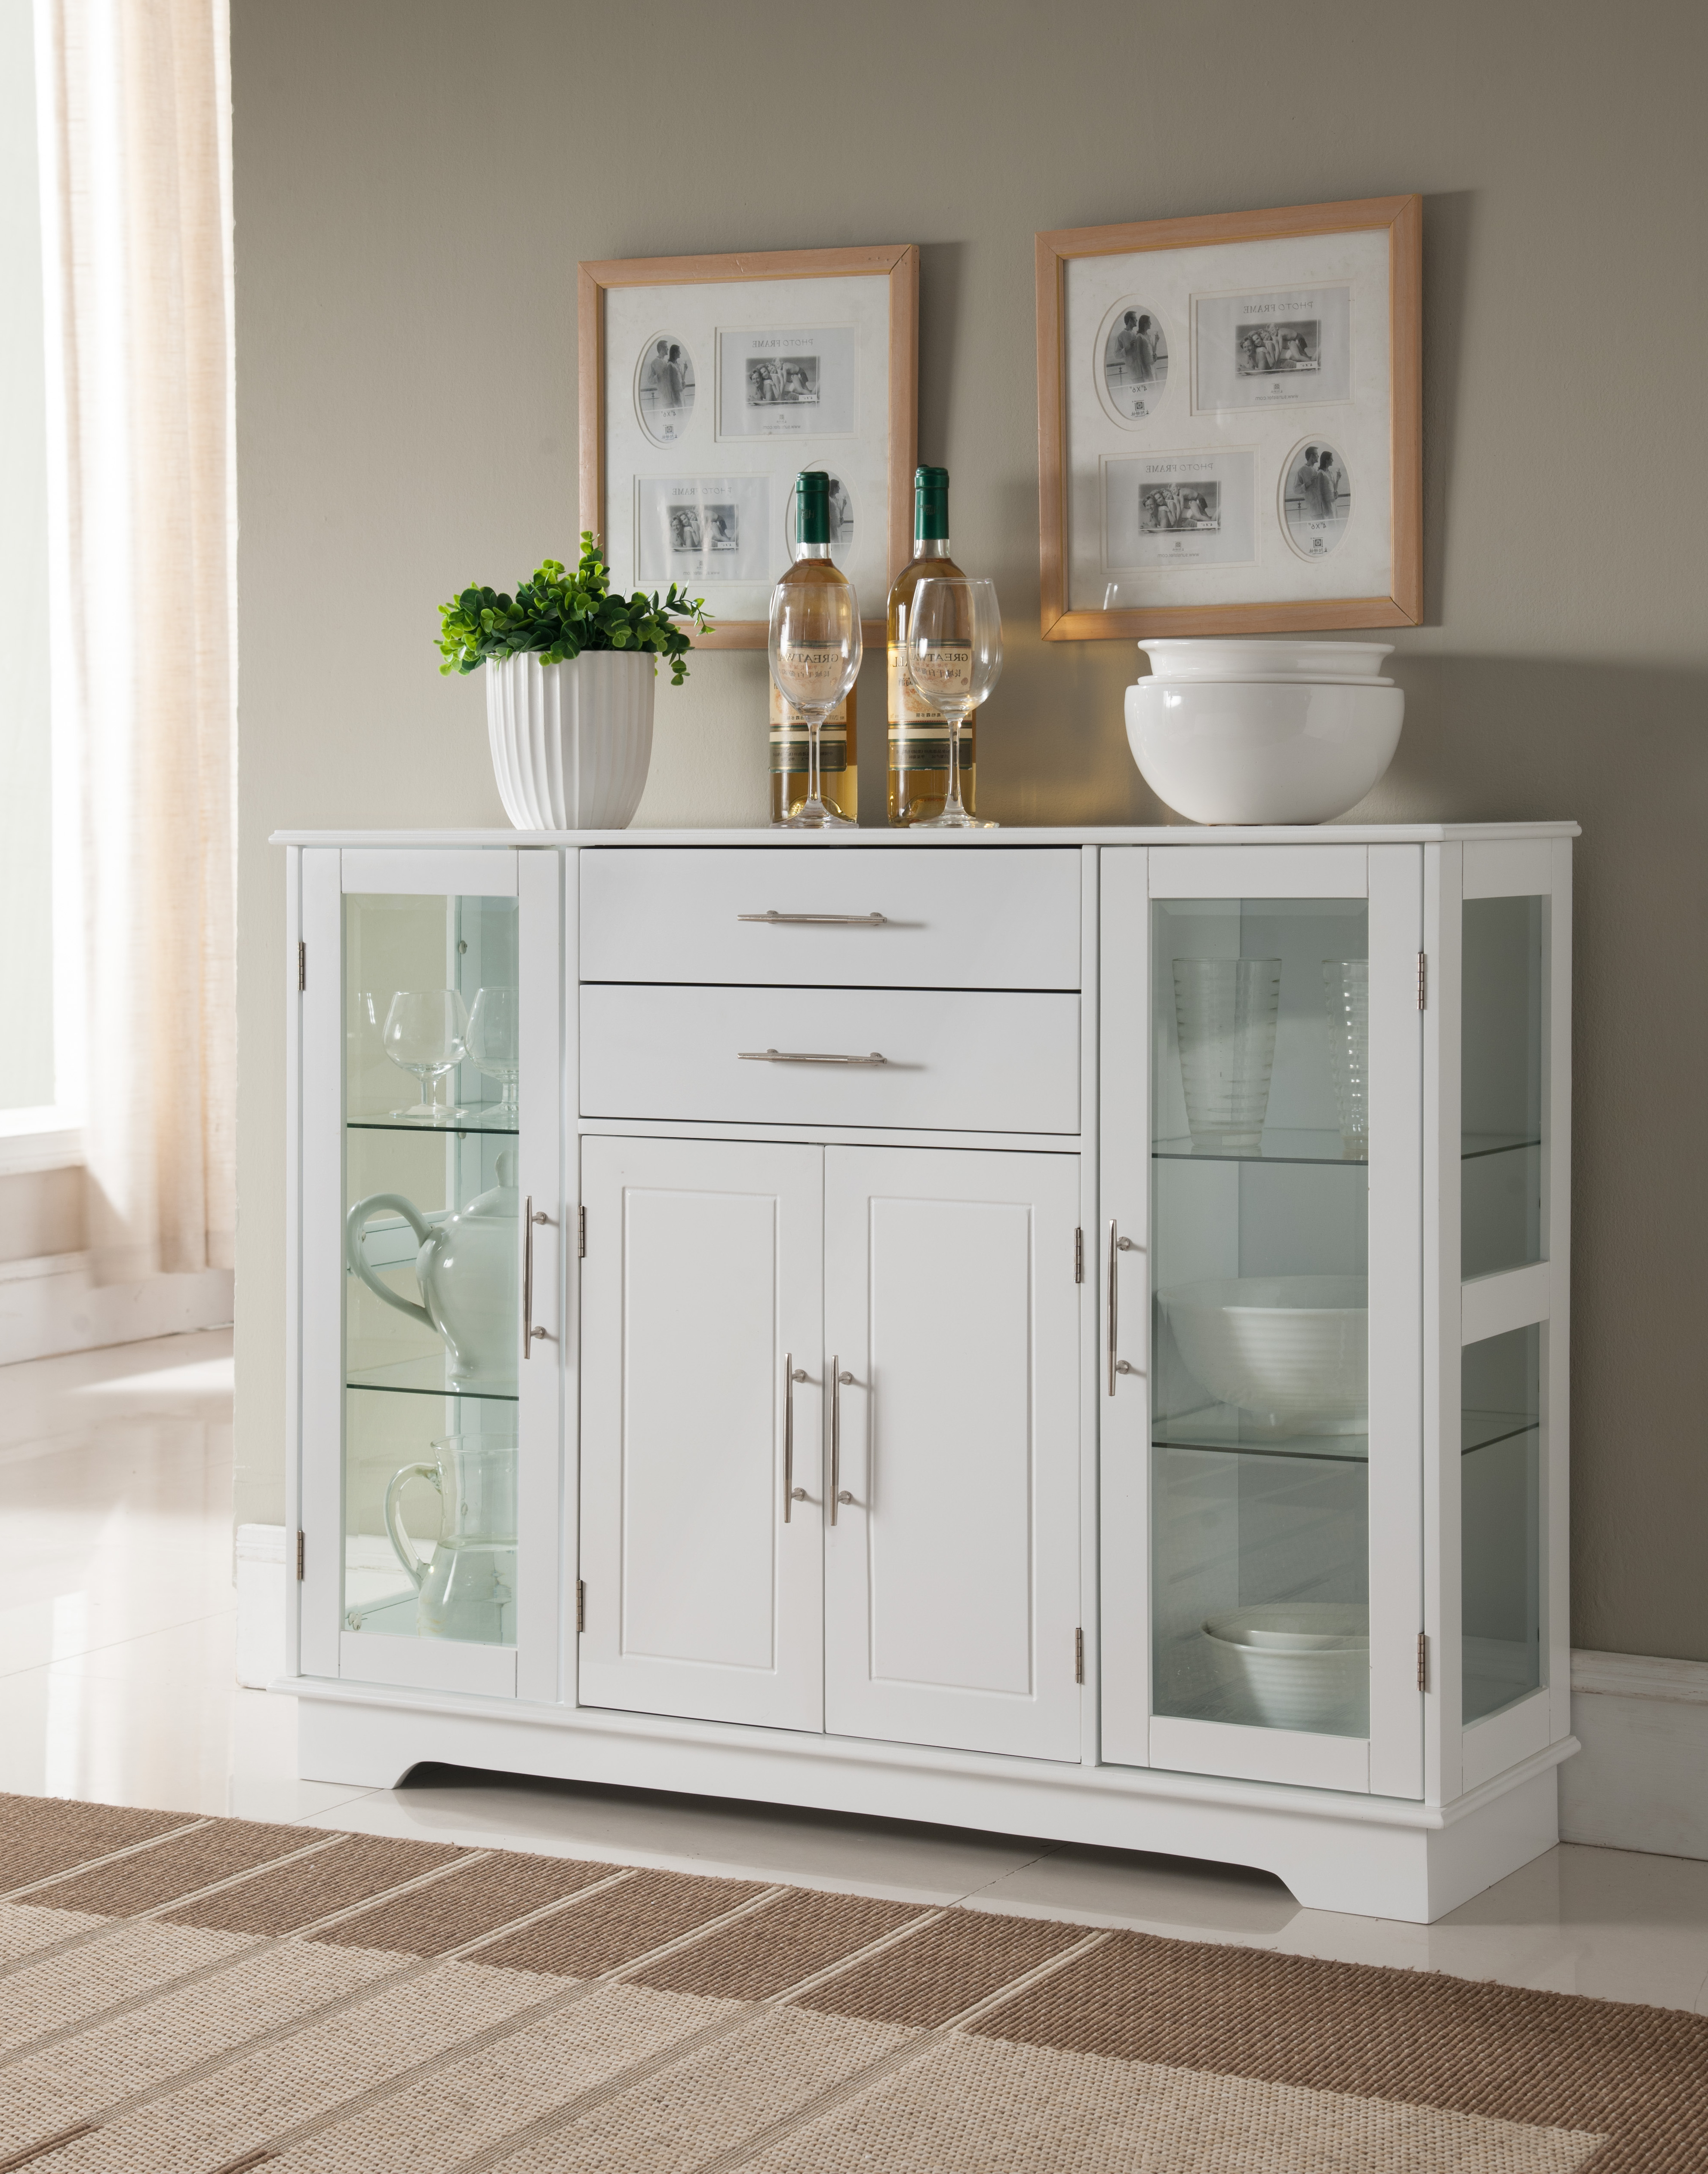 Elias White Wood Contemporary Kitchen Buffet Display China Cabinet With Storage Drawers & Glass Doors Pertaining To Contemporary Wooden Buffets With One Side Door Storage Cabinets And Two Drawers (View 11 of 30)